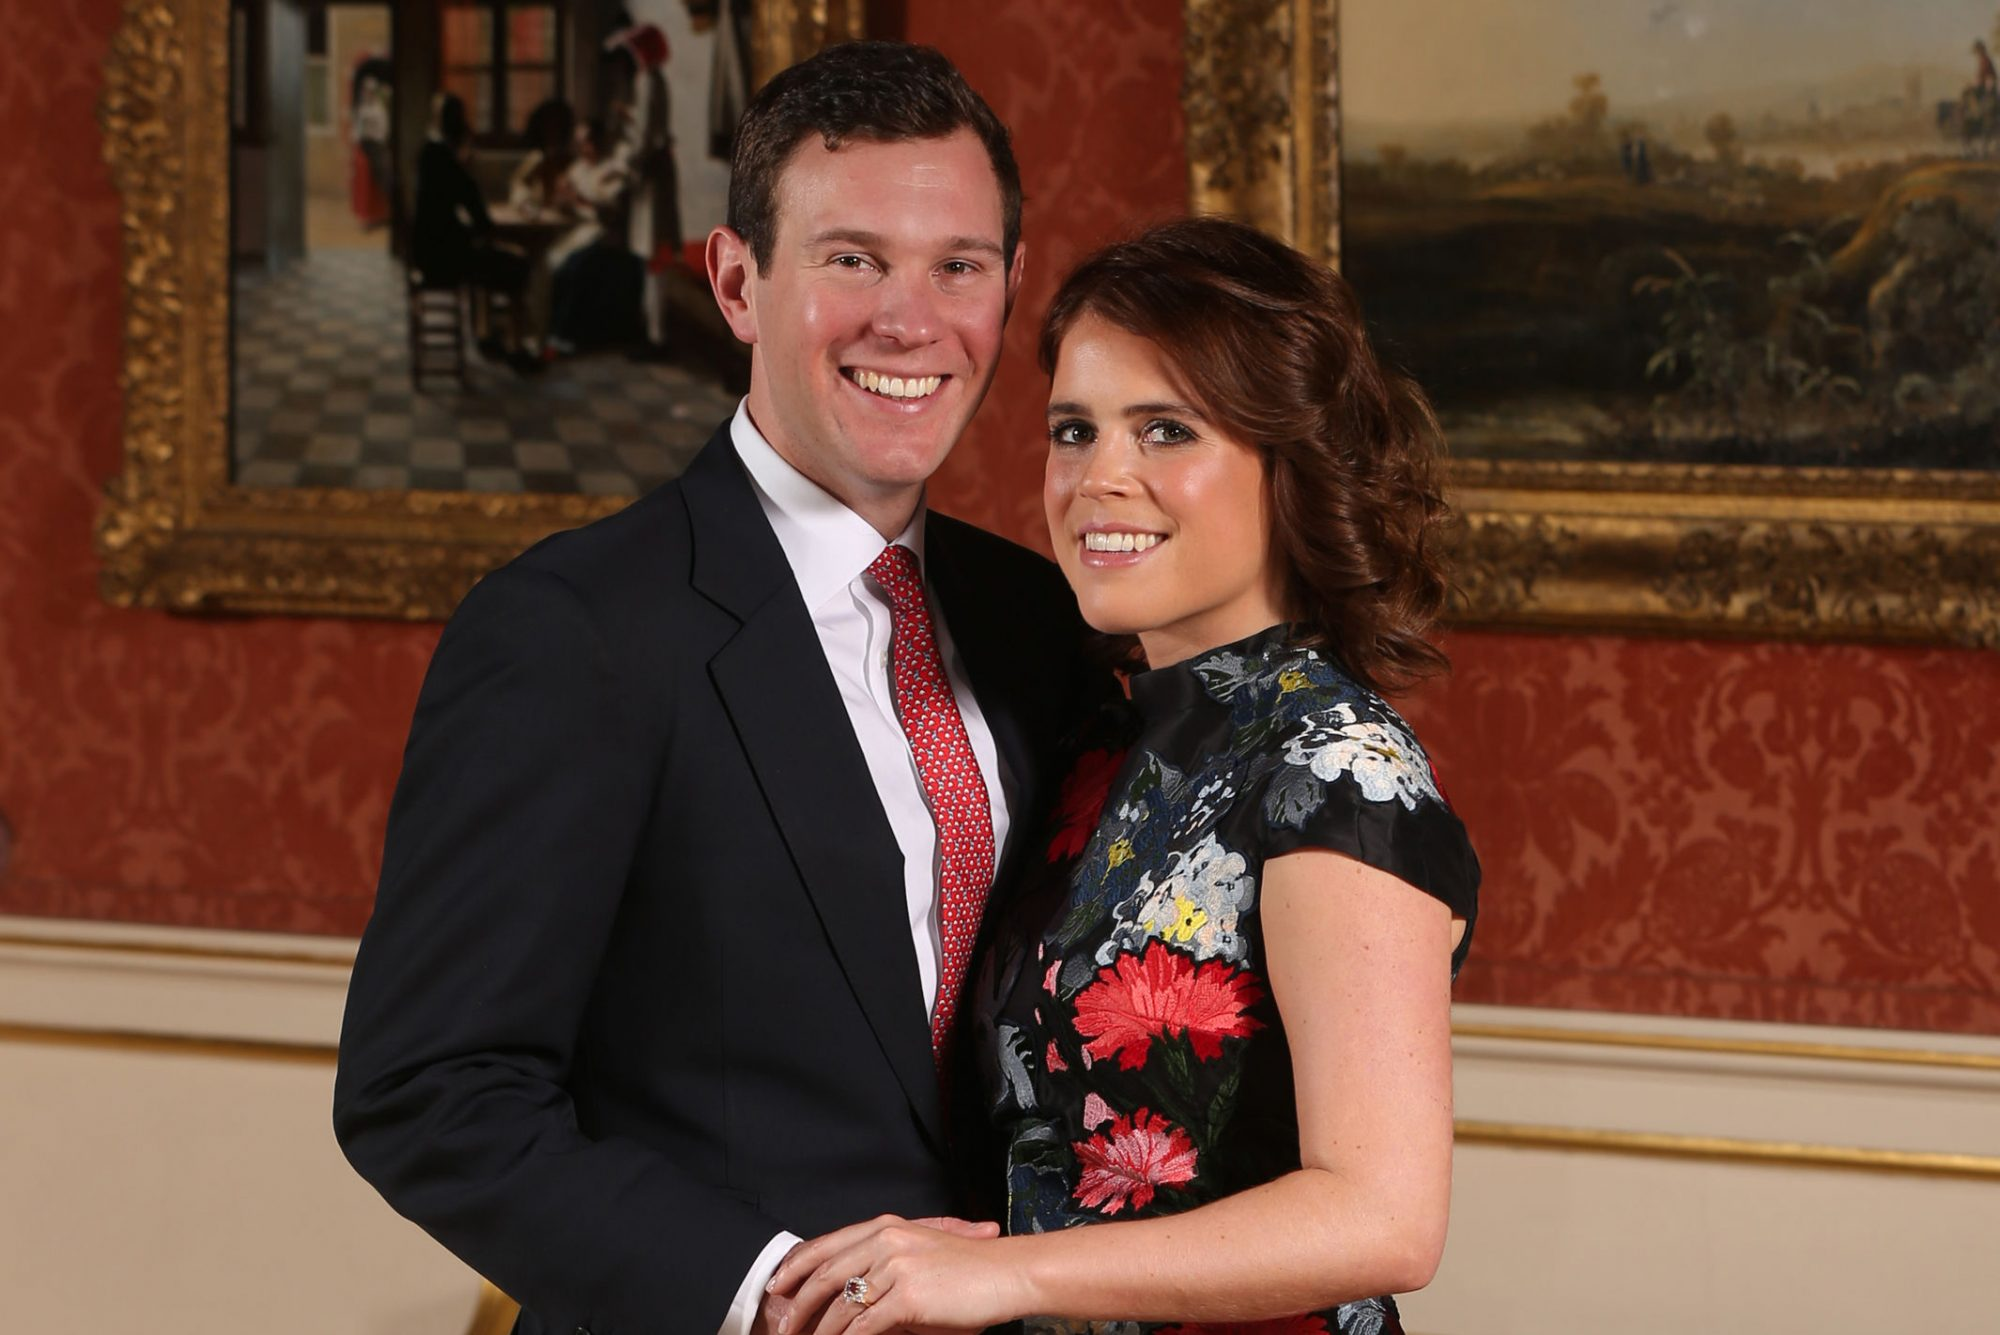 Meet Jack Brooksbank, a 31-Year-Old Tequila Brand Ambassador Who Married Into the Royal Family